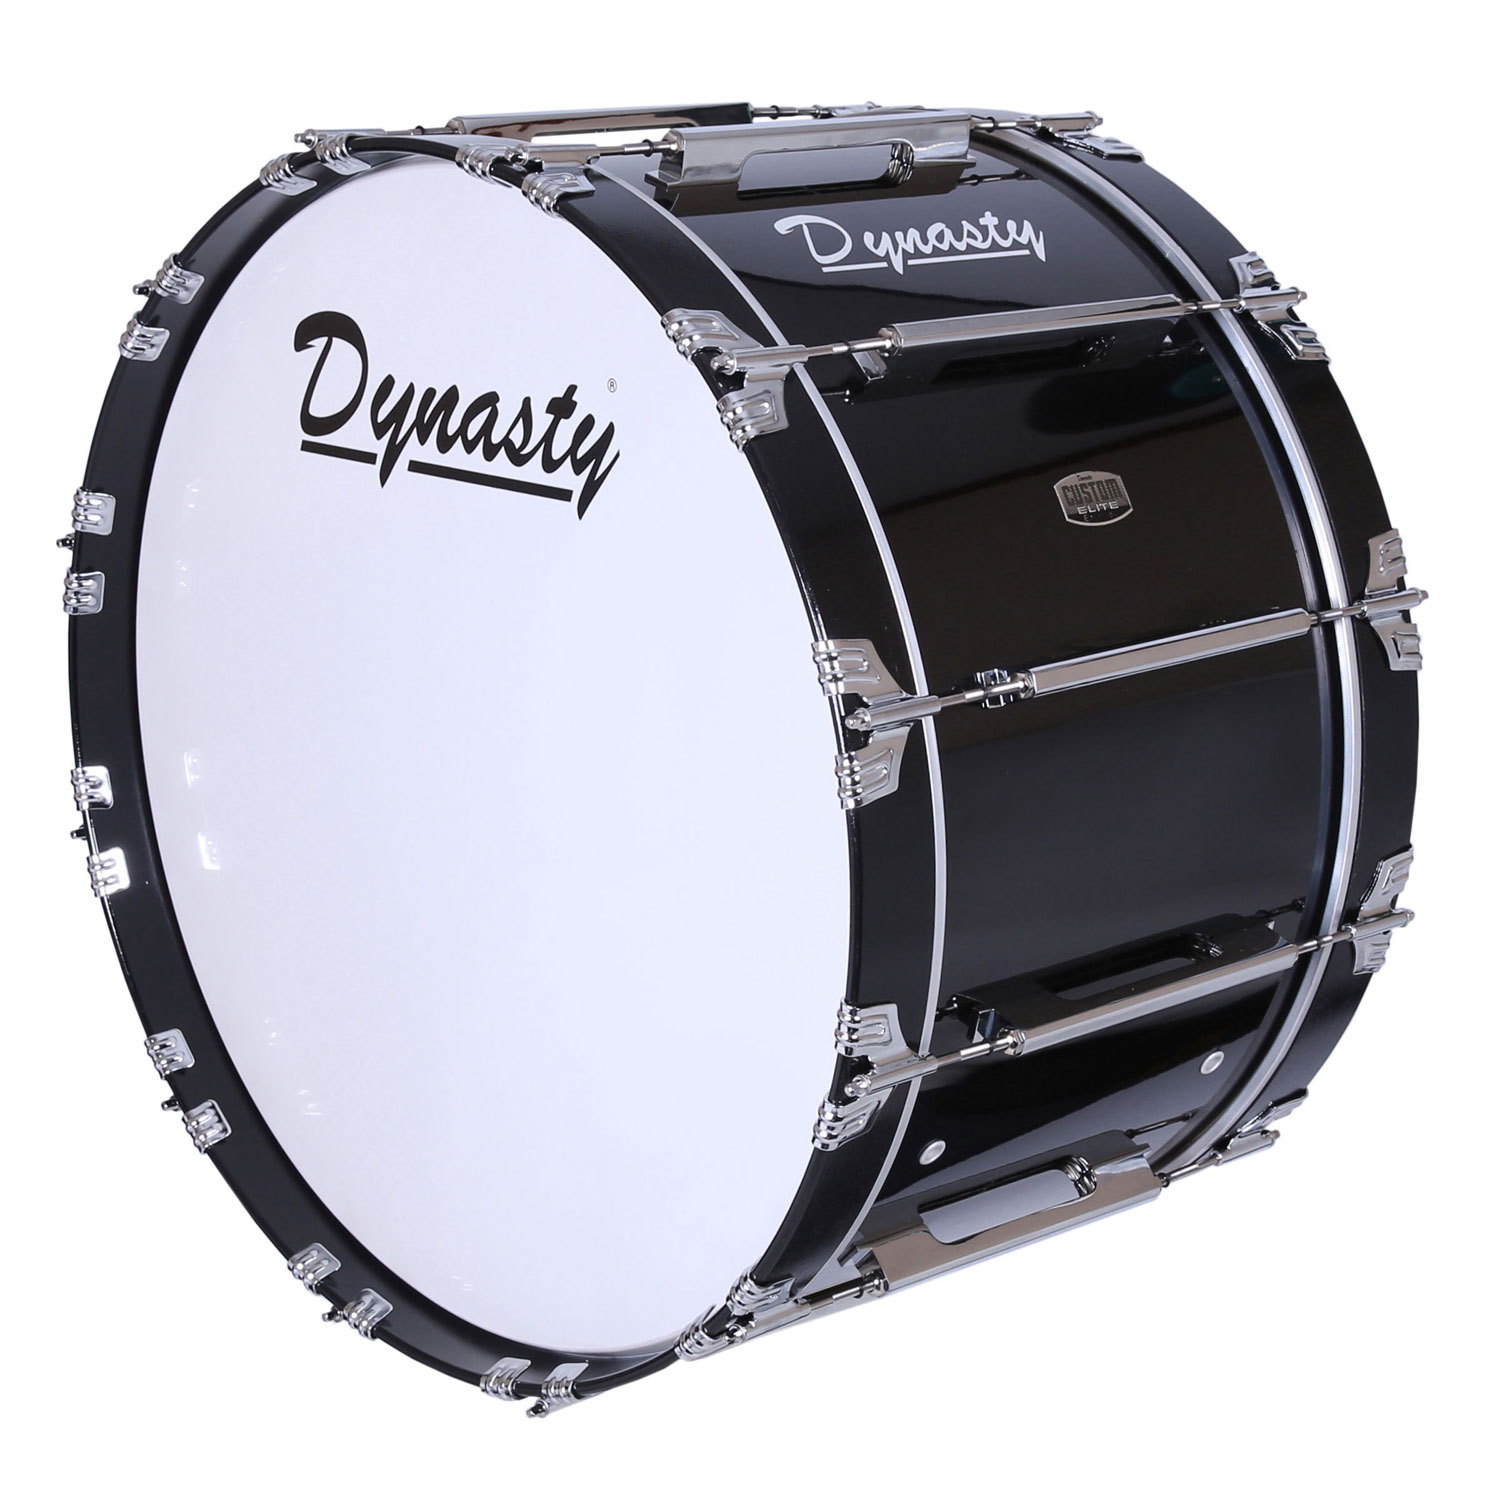 "Dynasty 20"" Custom Elite Marching Bass Drum in Black/Chrome"